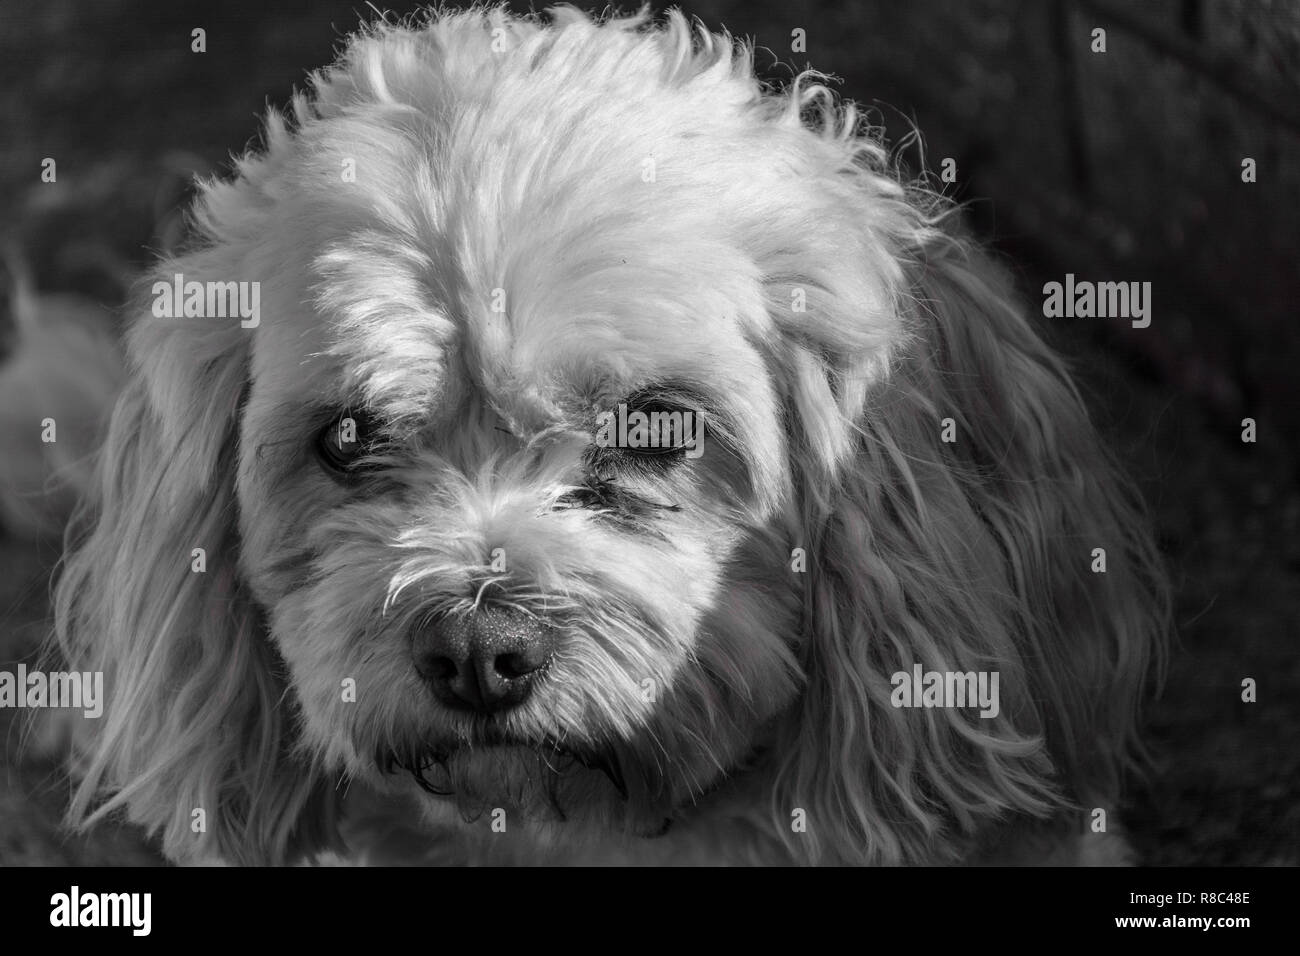 Black and white portrait of a cute but moody looking male Cavachon dog (Canis lupus familiaris). - Stock Image